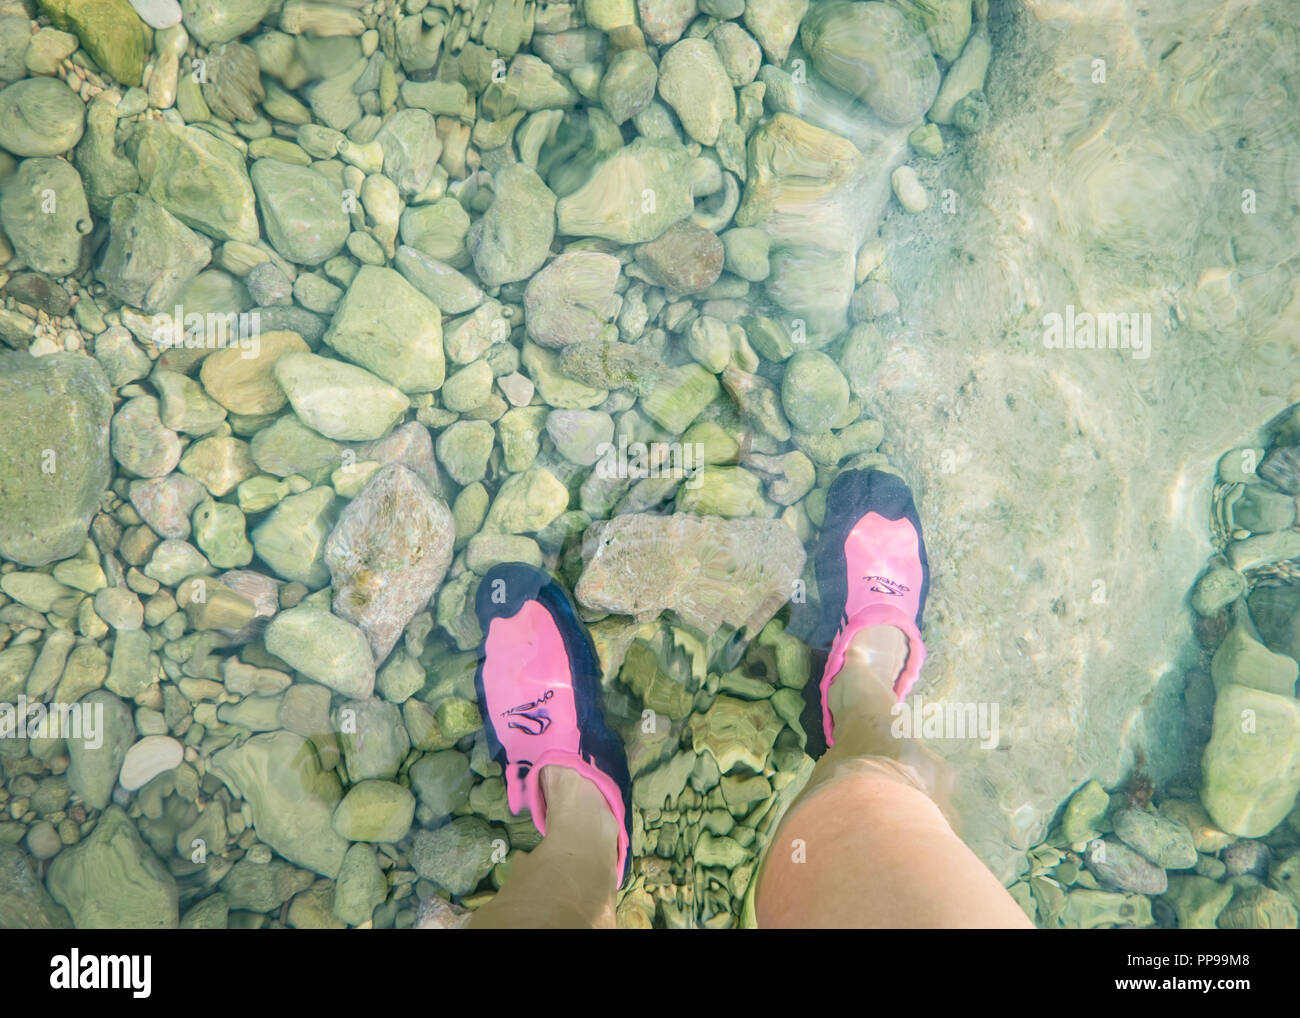 Woman's feet in diving shoes in shallow water on rocky beach, Ognina, Sicily Stock Photo